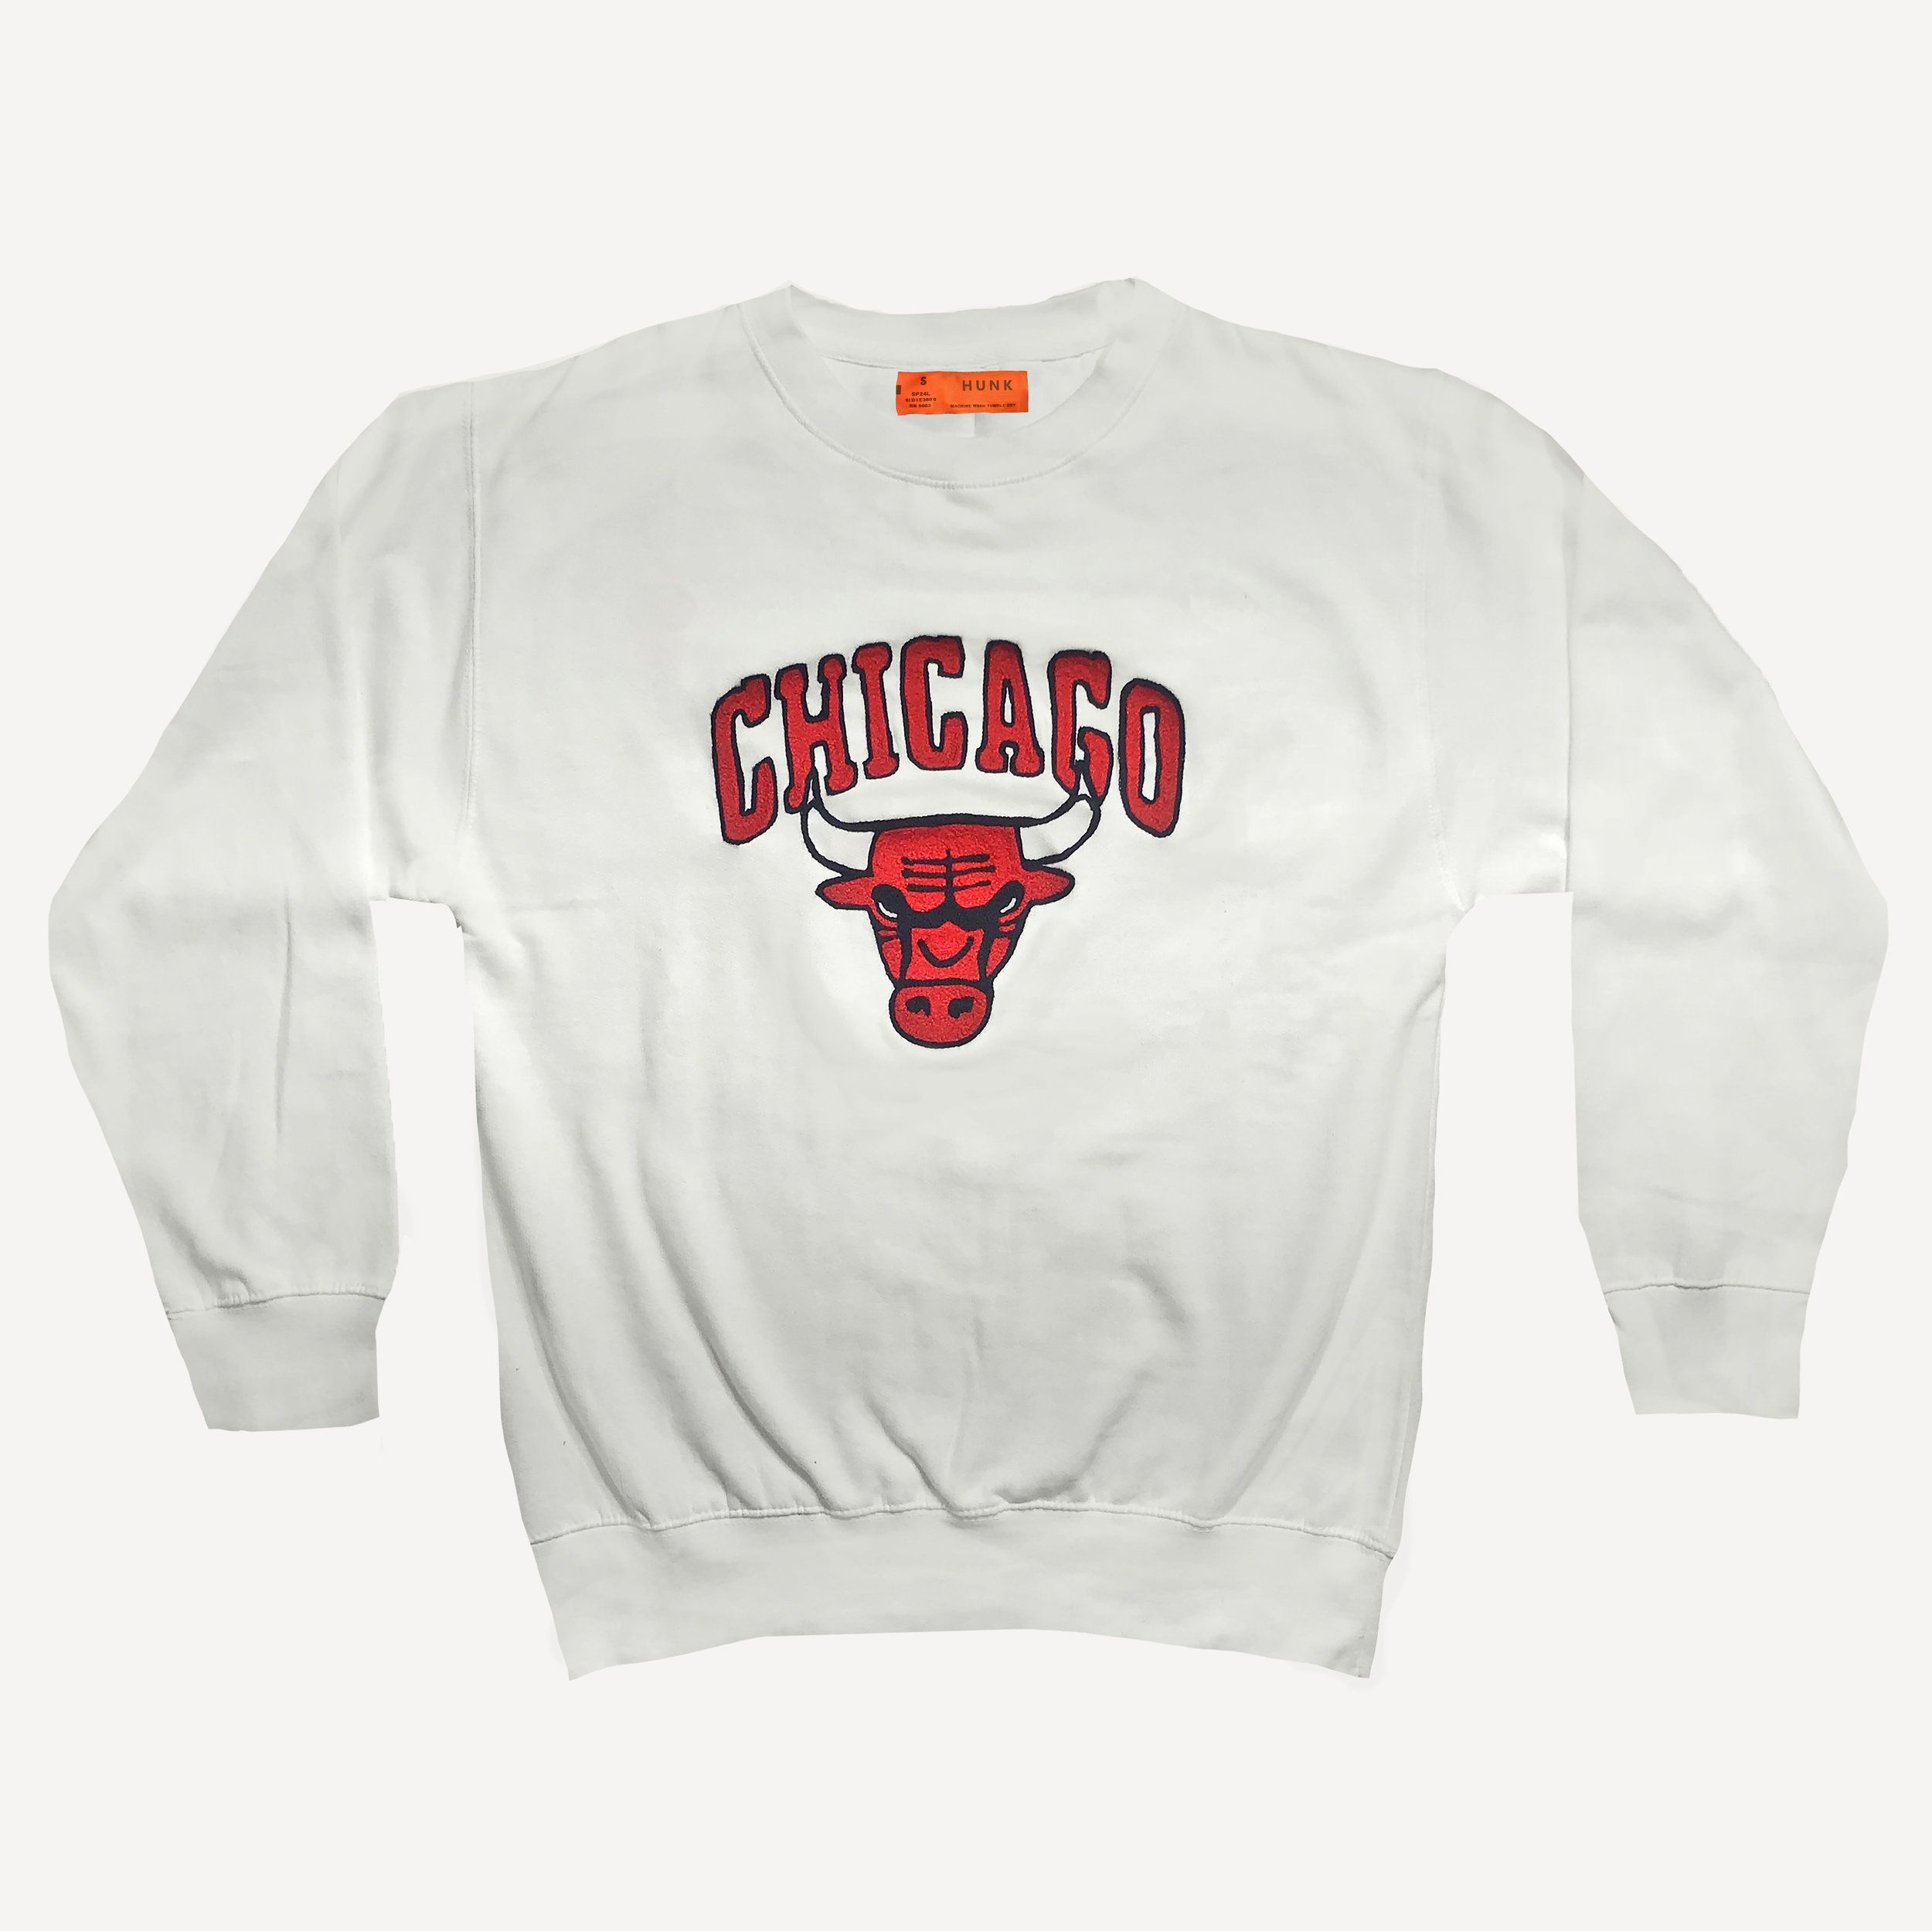 Copy of CHICAGO BULLS CREW